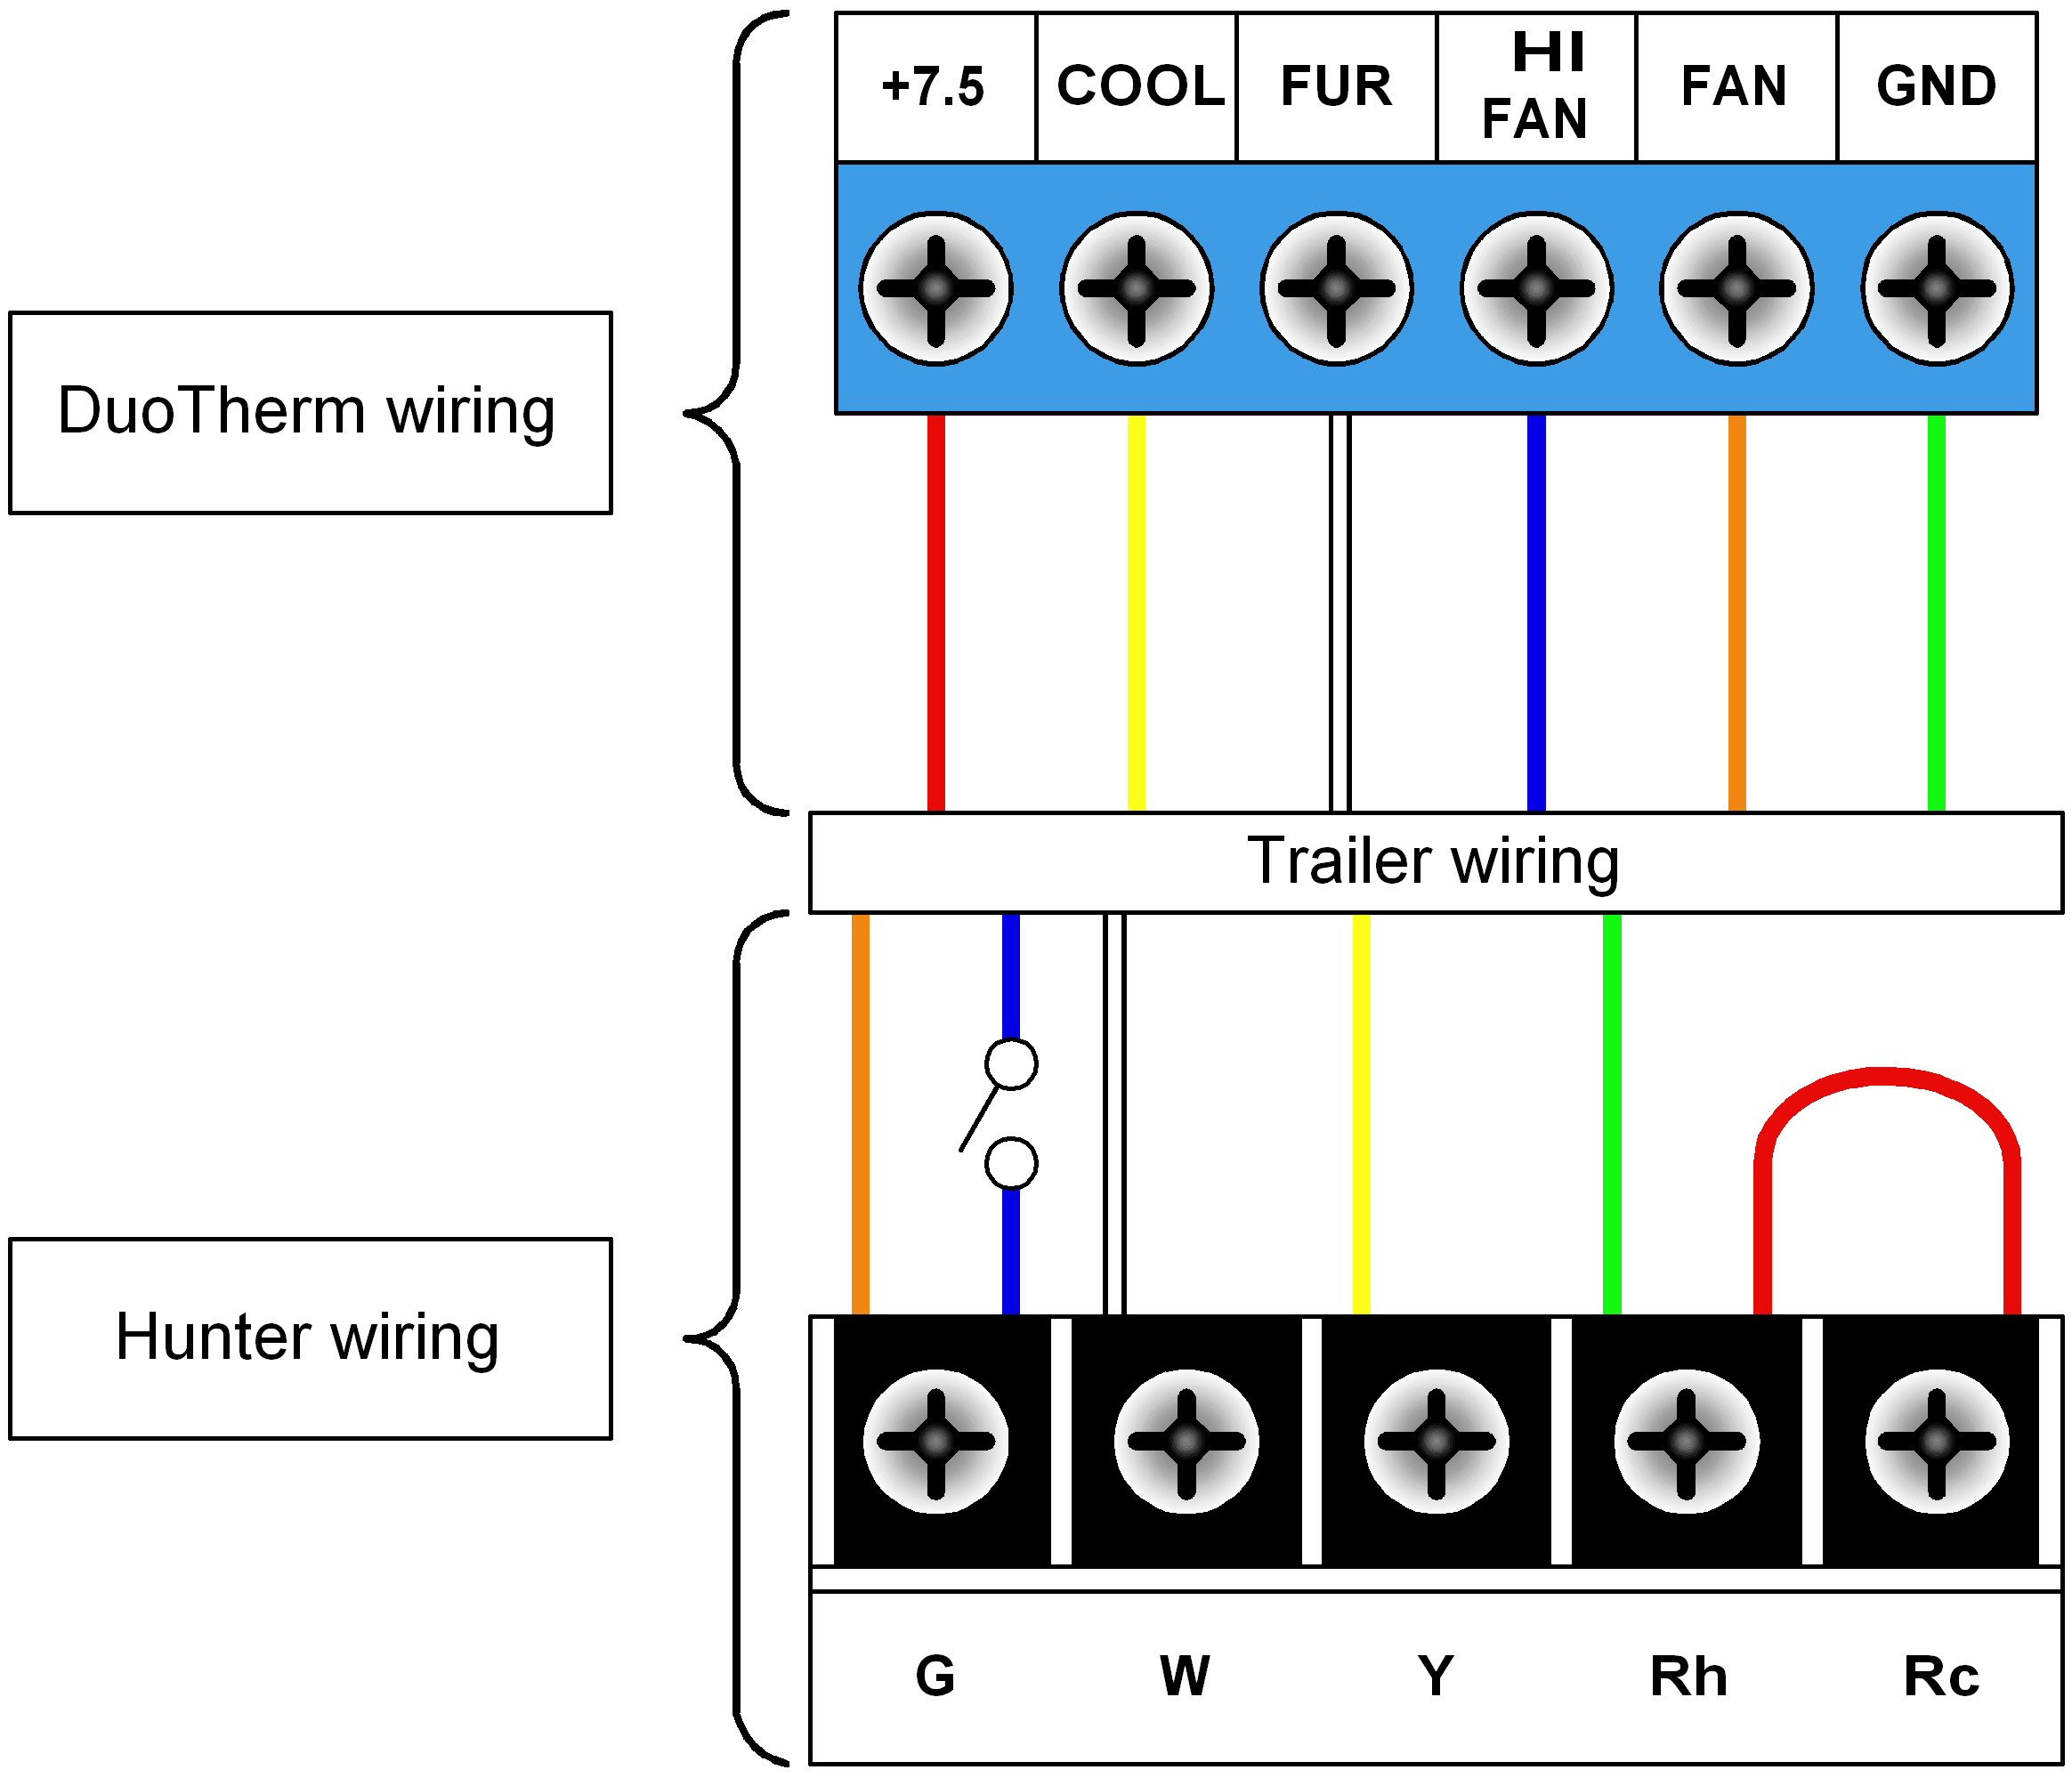 Digitalthermostatconversion on fire alarm wiring color code